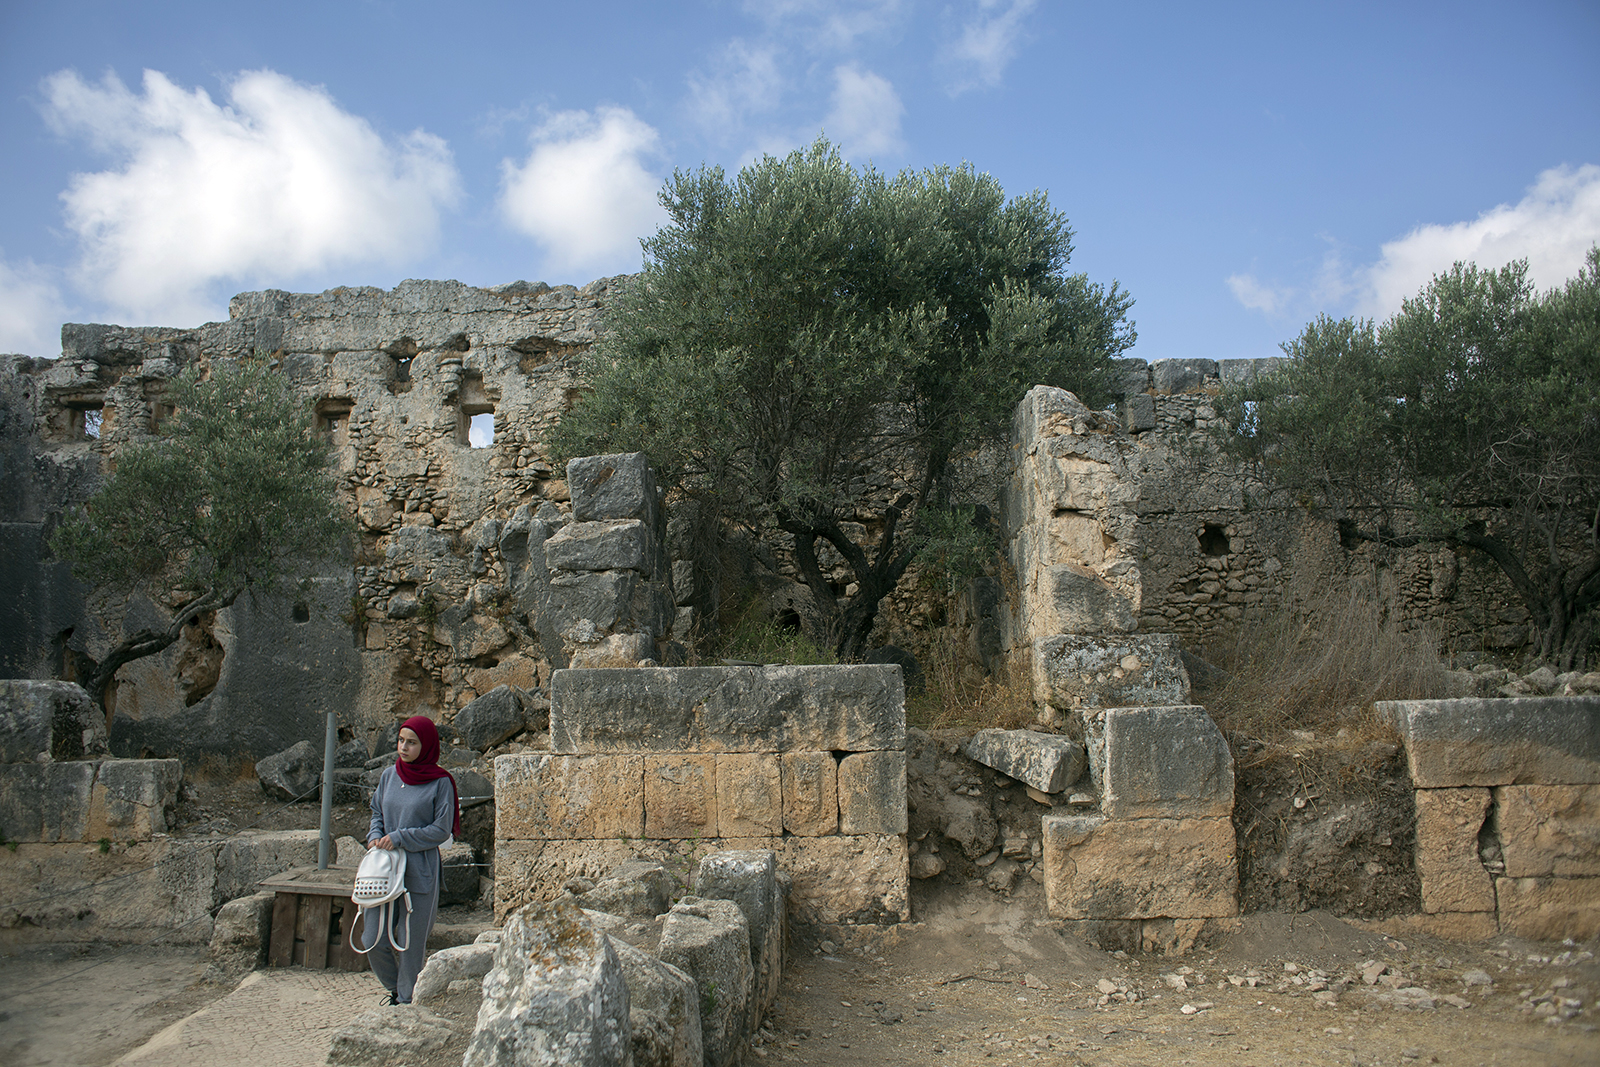 """A hiker explores Deir Qalaa, """"Monastery of the Castle,"""" the remains of a Byzantine monastery near the Jewish settlement of Peduel and the Palestinian village of Deir Balout, west of the West Bank city of Salfit, Friday, June. 11, 2021. A growing number of Palestinians are taking up hiking, which offers a way to explore the countryside and historical landmarks in the Israeli-occupied West Bank. (AP Photo/Nasser Nasser)"""